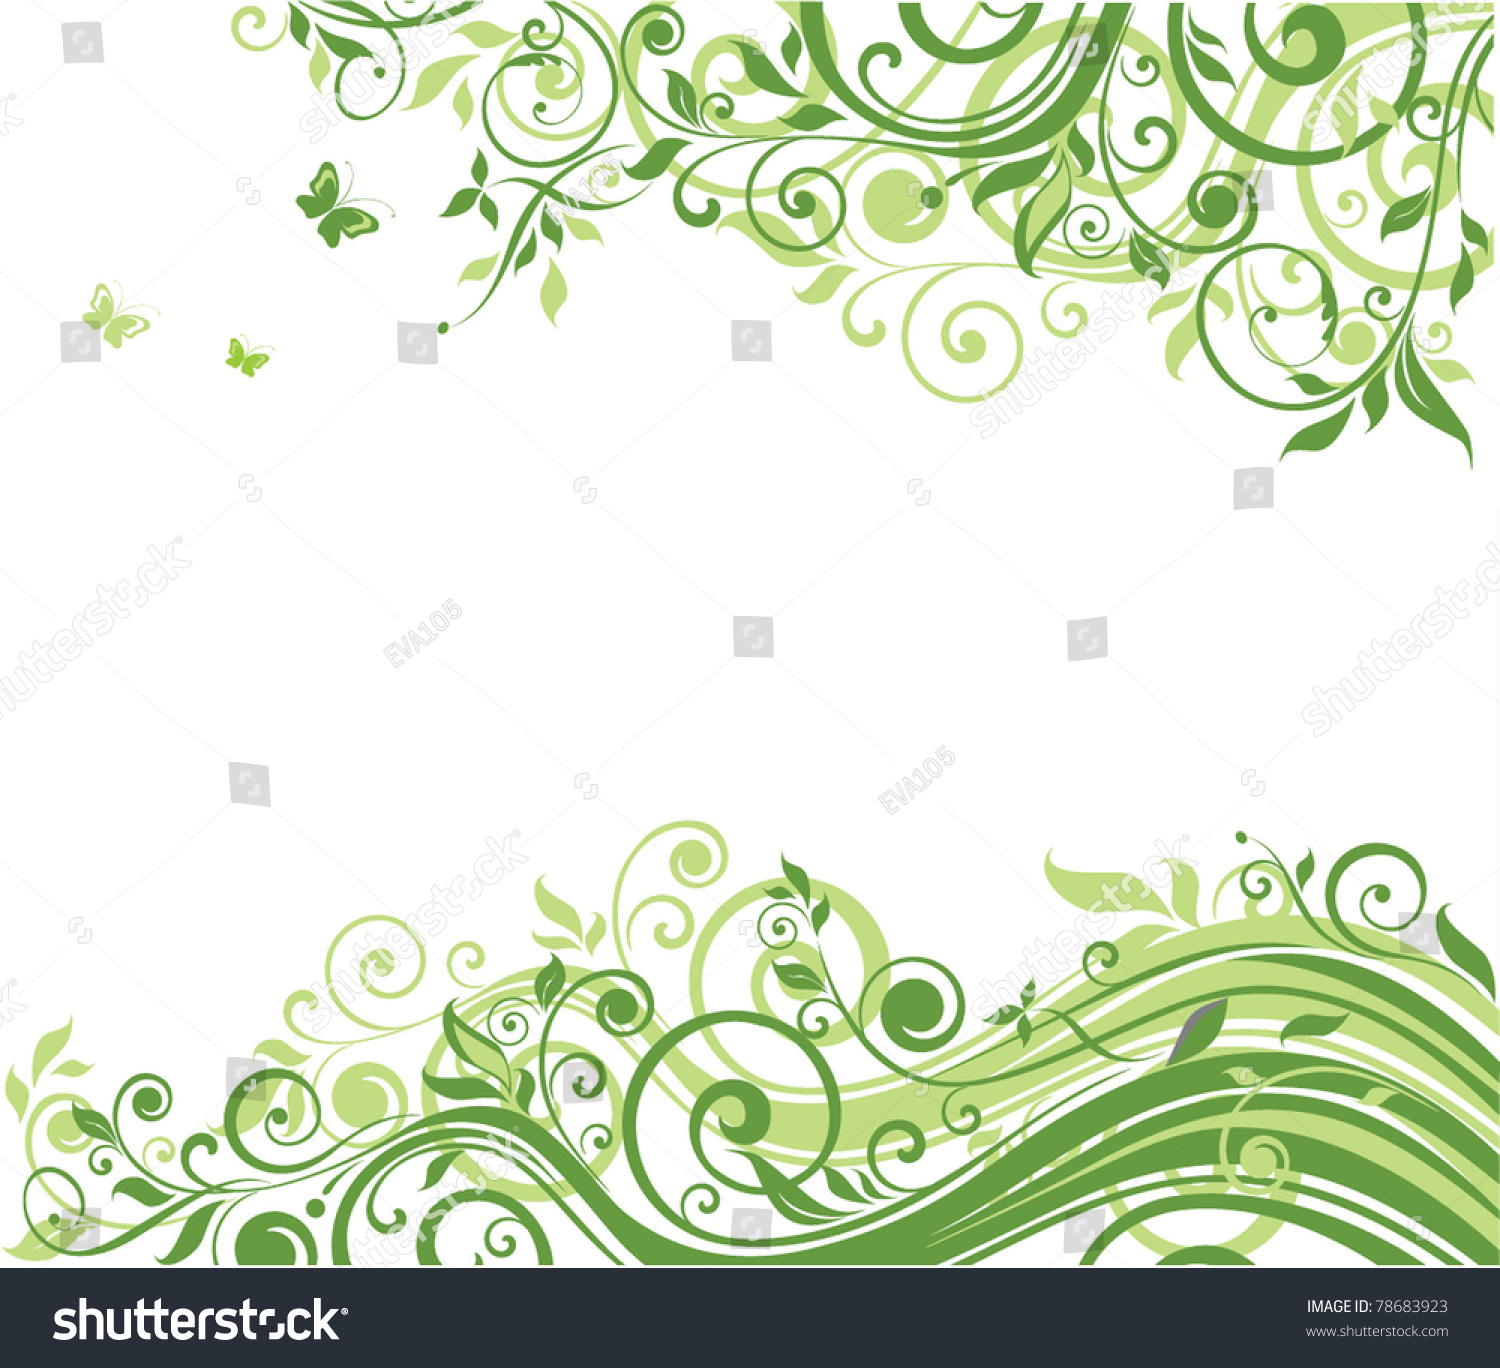 Garden Background Stock Images, Royalty-Free Images ...